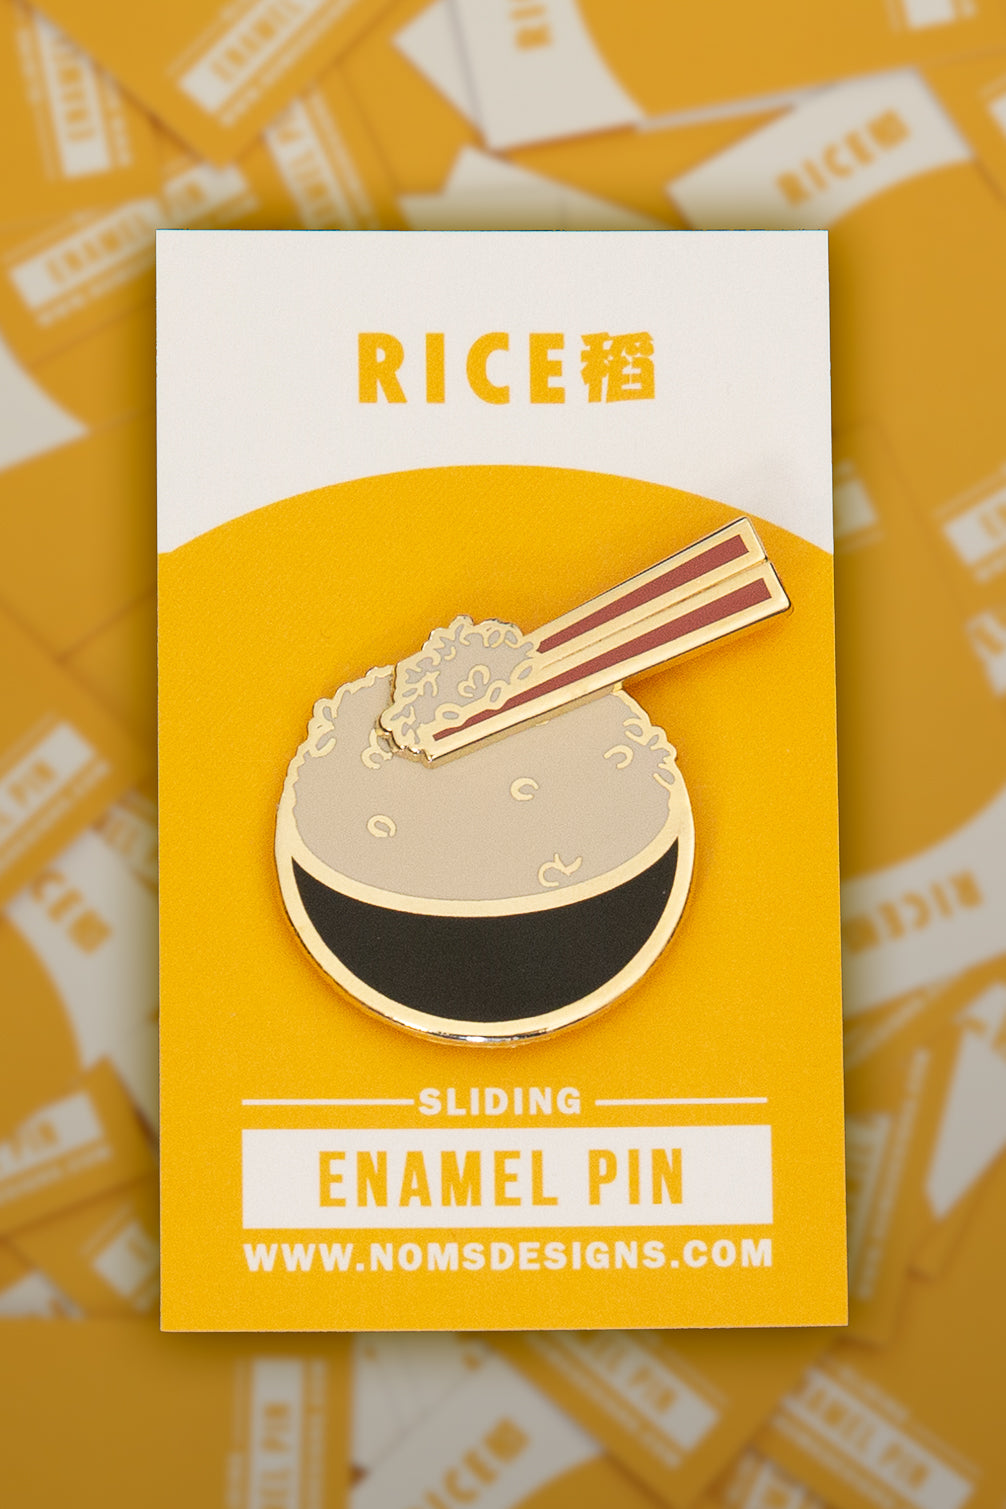 Rice Sliding Enamel Pin